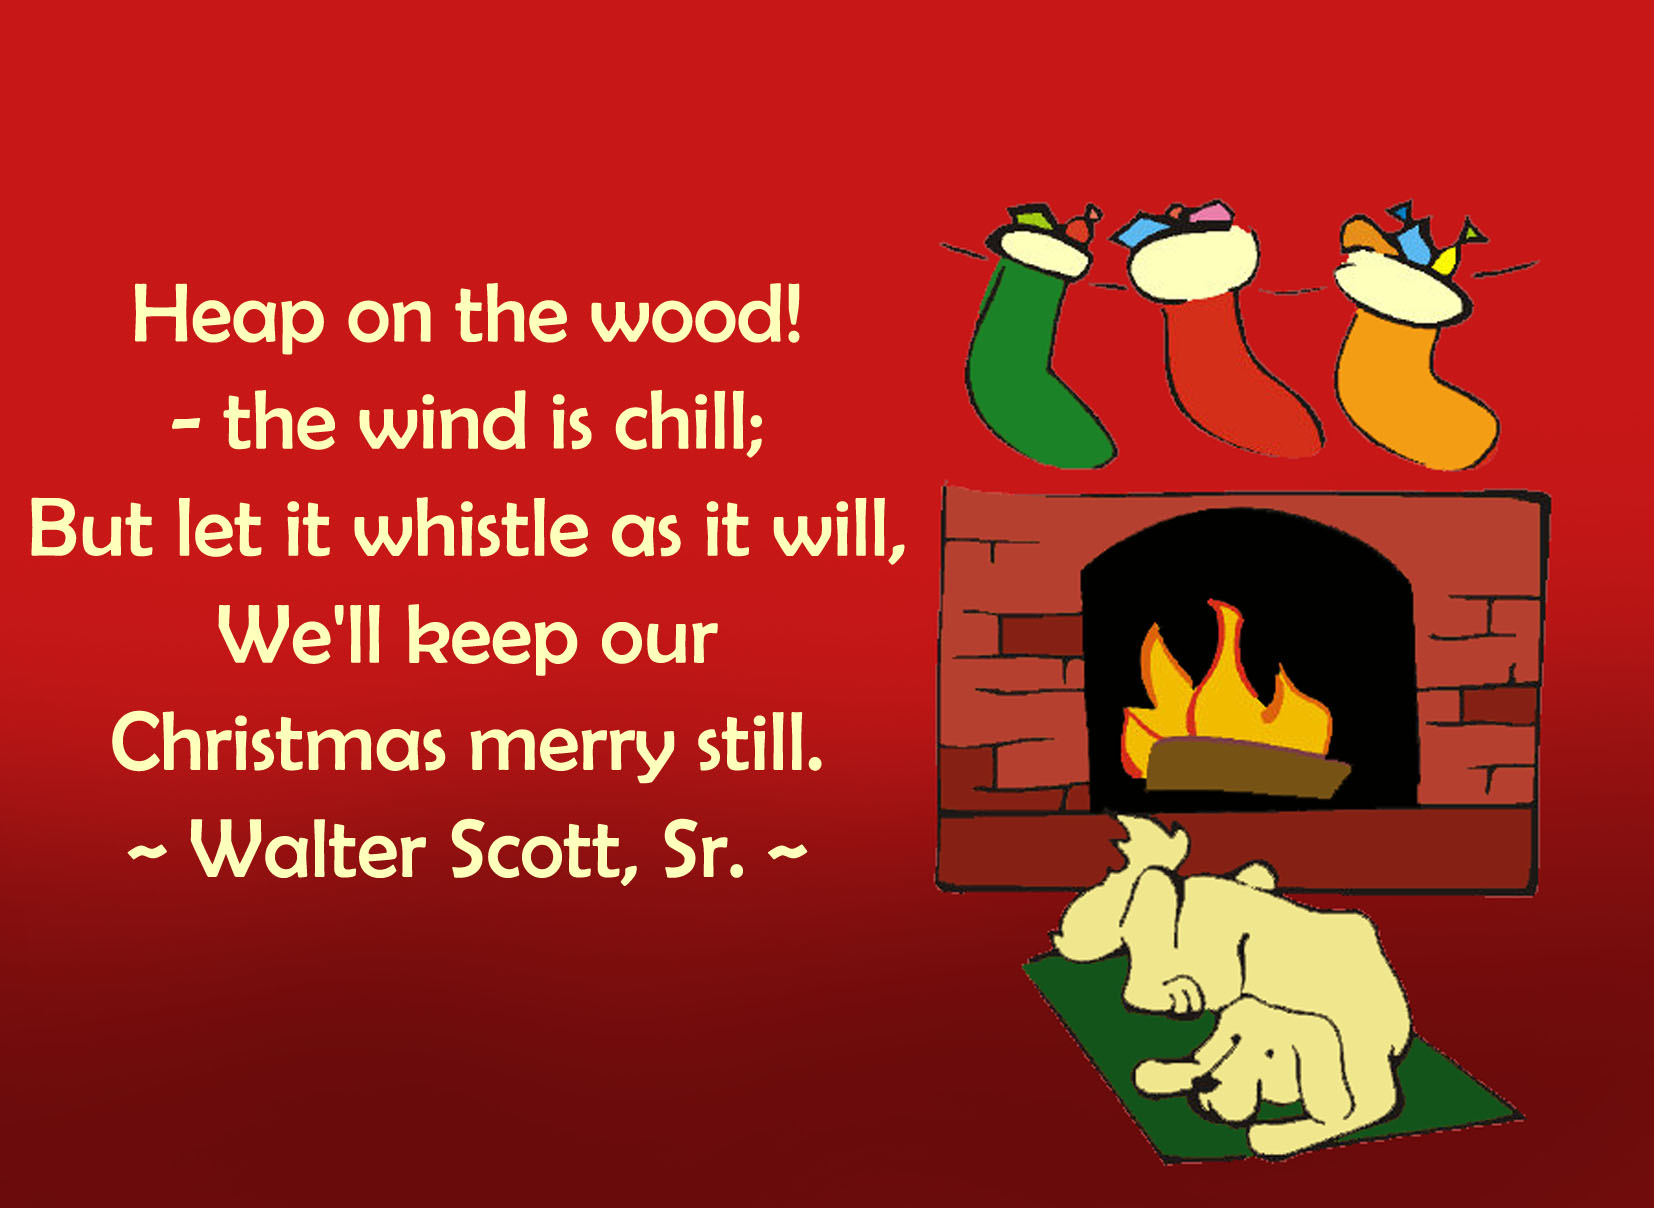 Corner A Quote By Walter Sr Heartwarming Ny Quotes About Kids Cards Sayings Chrismas Card Parents Sayings Fireplace Front Cards Religious Dog cards Christmas Sayings For Cards